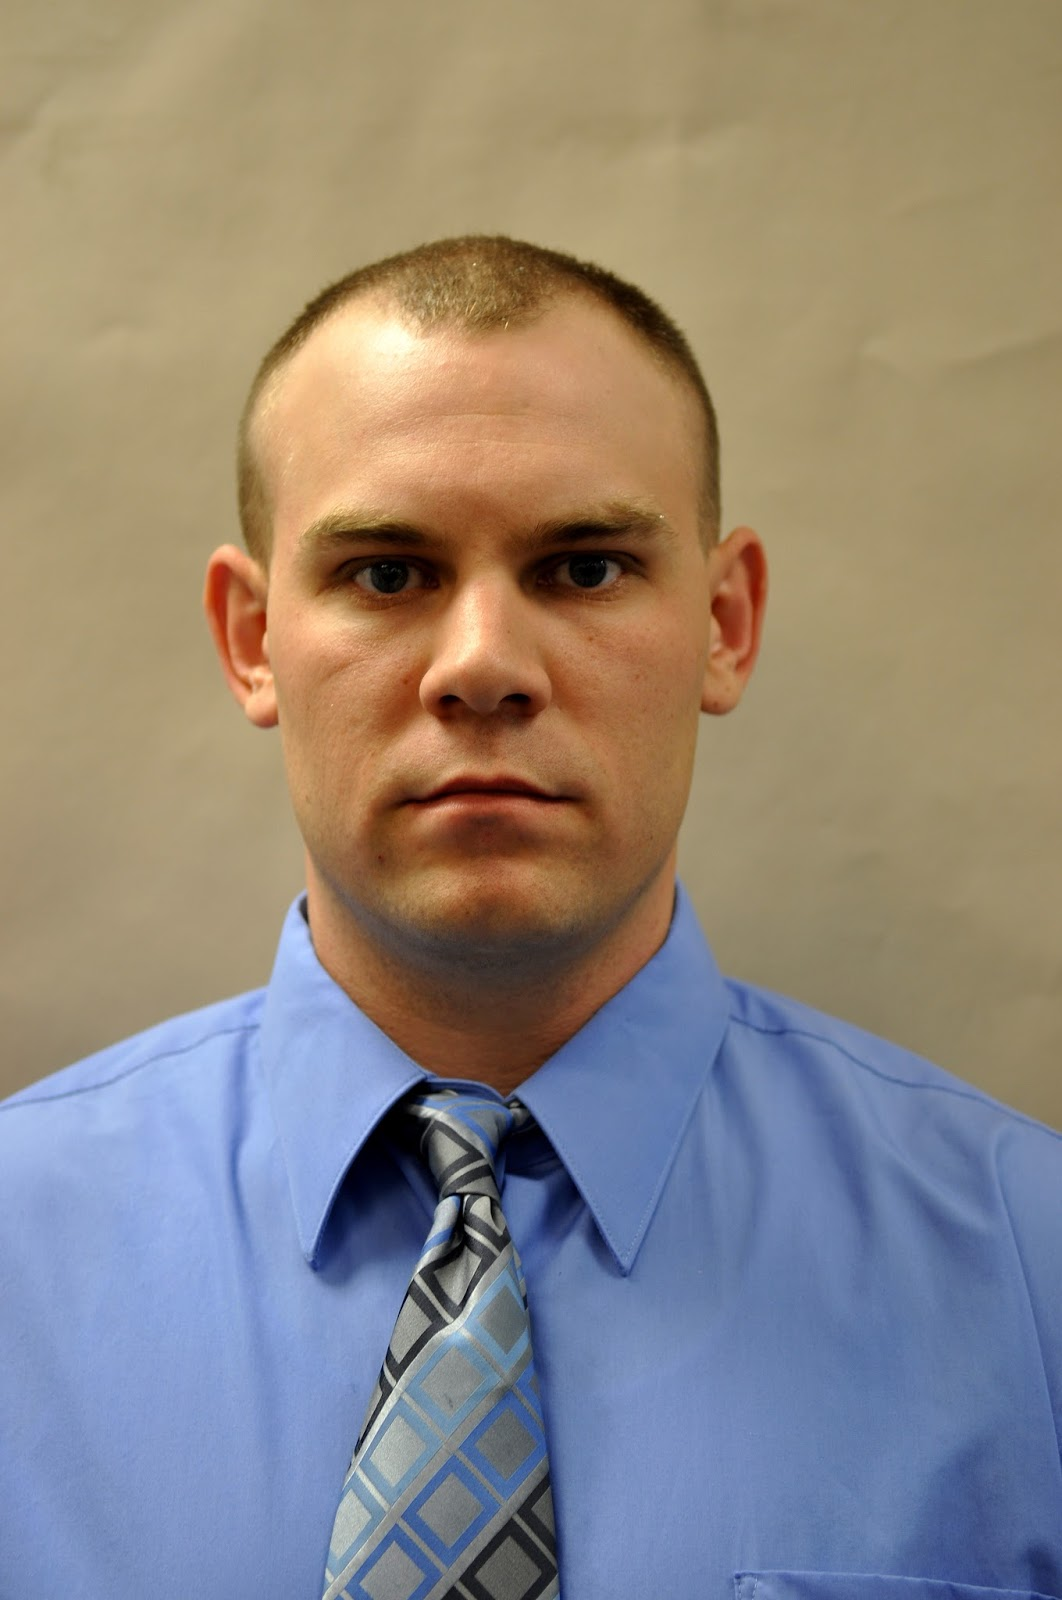 Deputy First Class Blaine Gaskill, a school resource officer at Great Mills High School in Maryland.